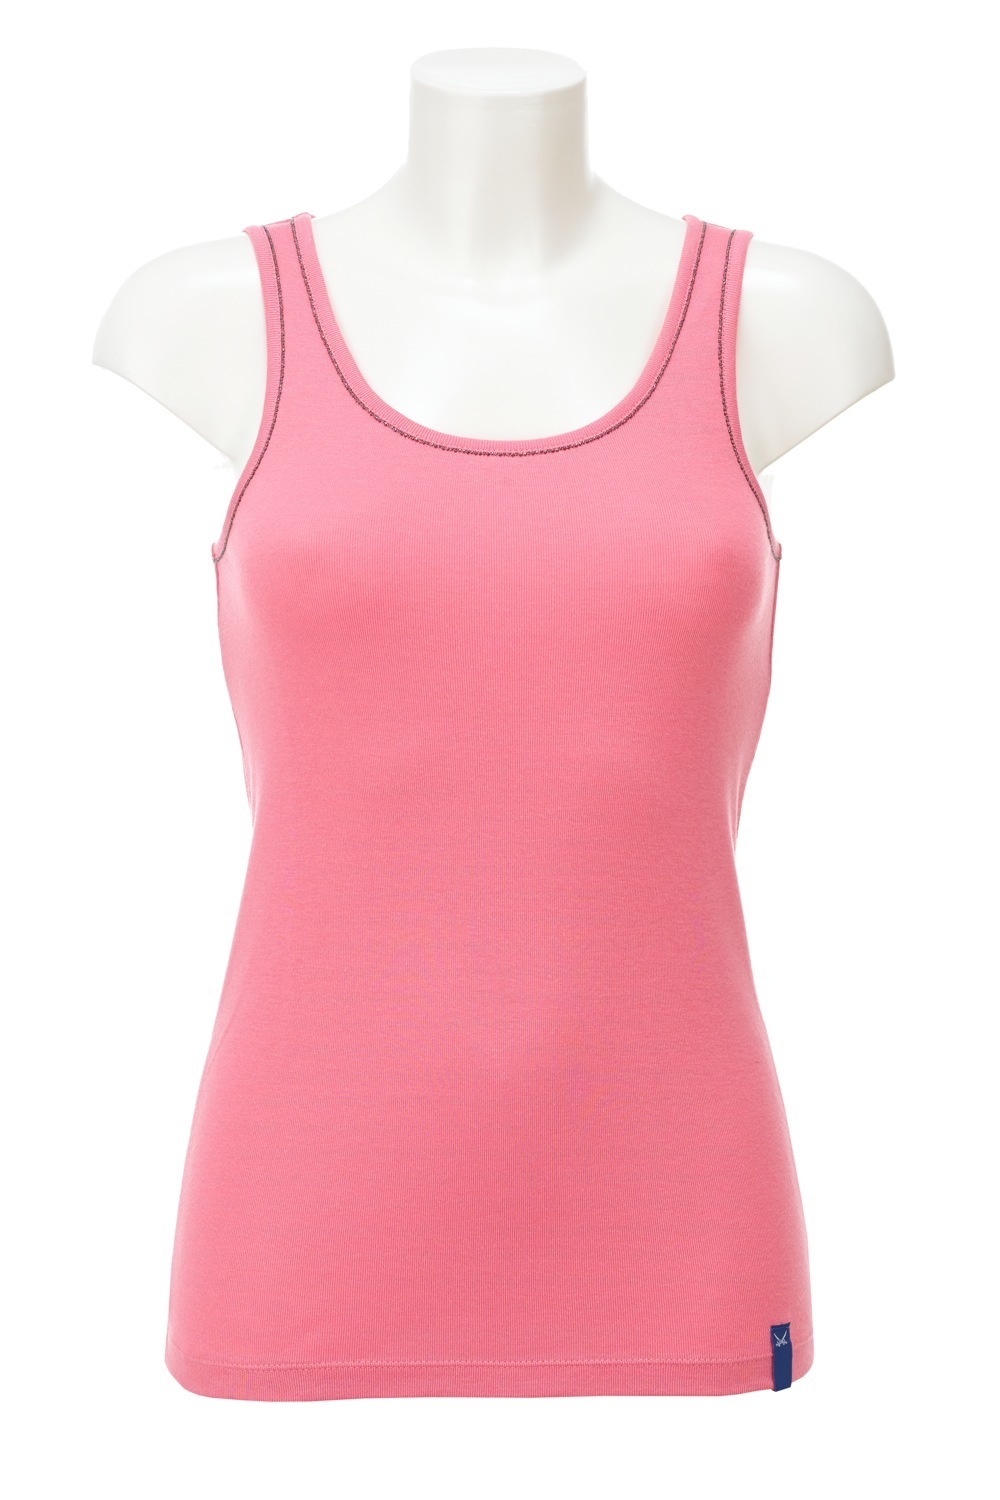 Damen Top CHAIN, Pink, Gr. XXL